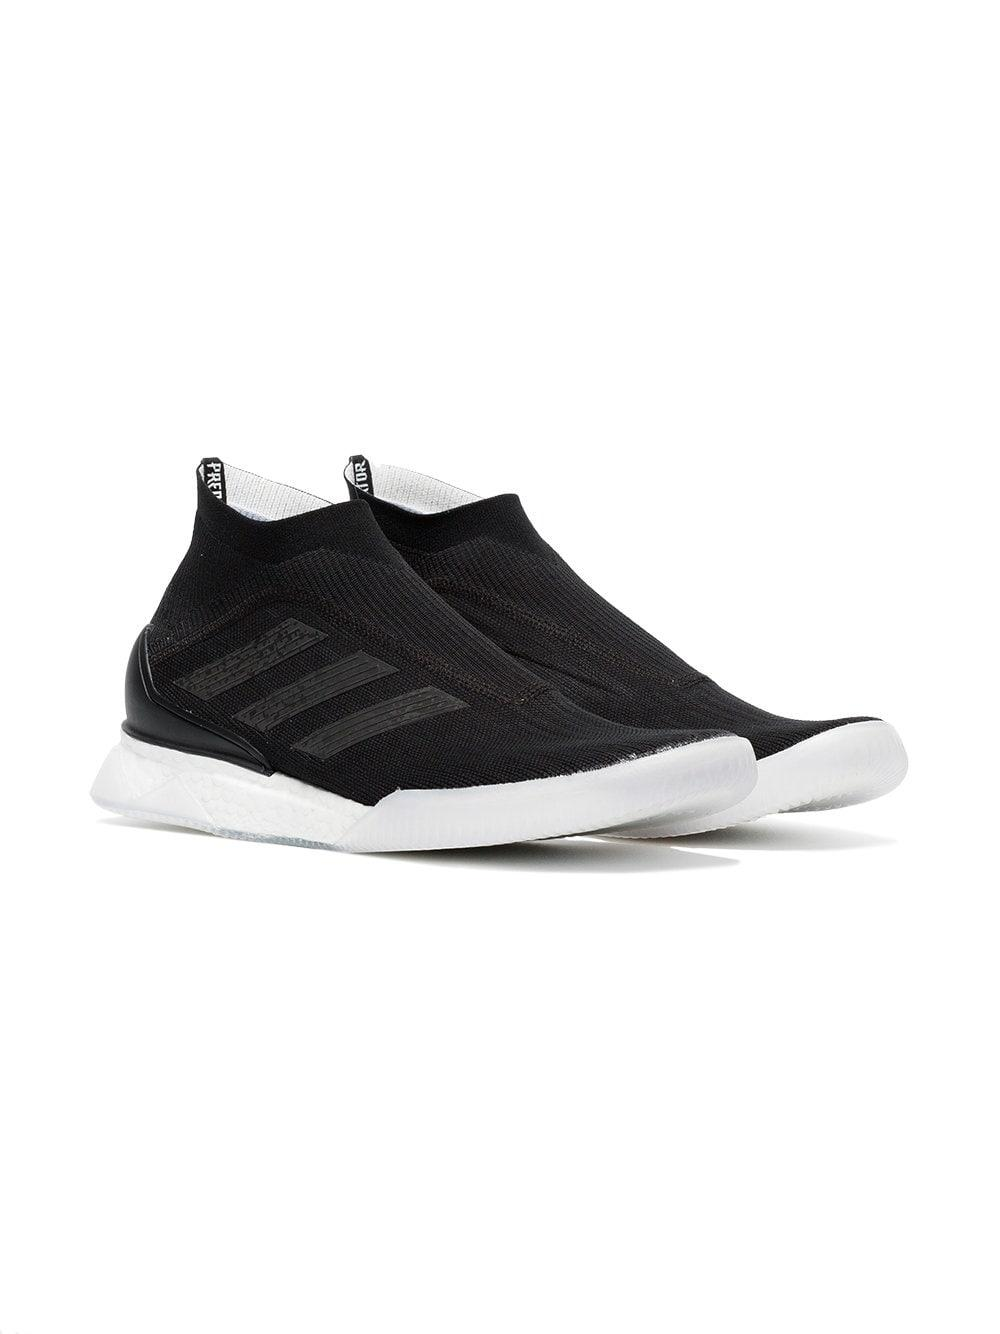 adidas Synthetic Black Tango Sneakers for Men